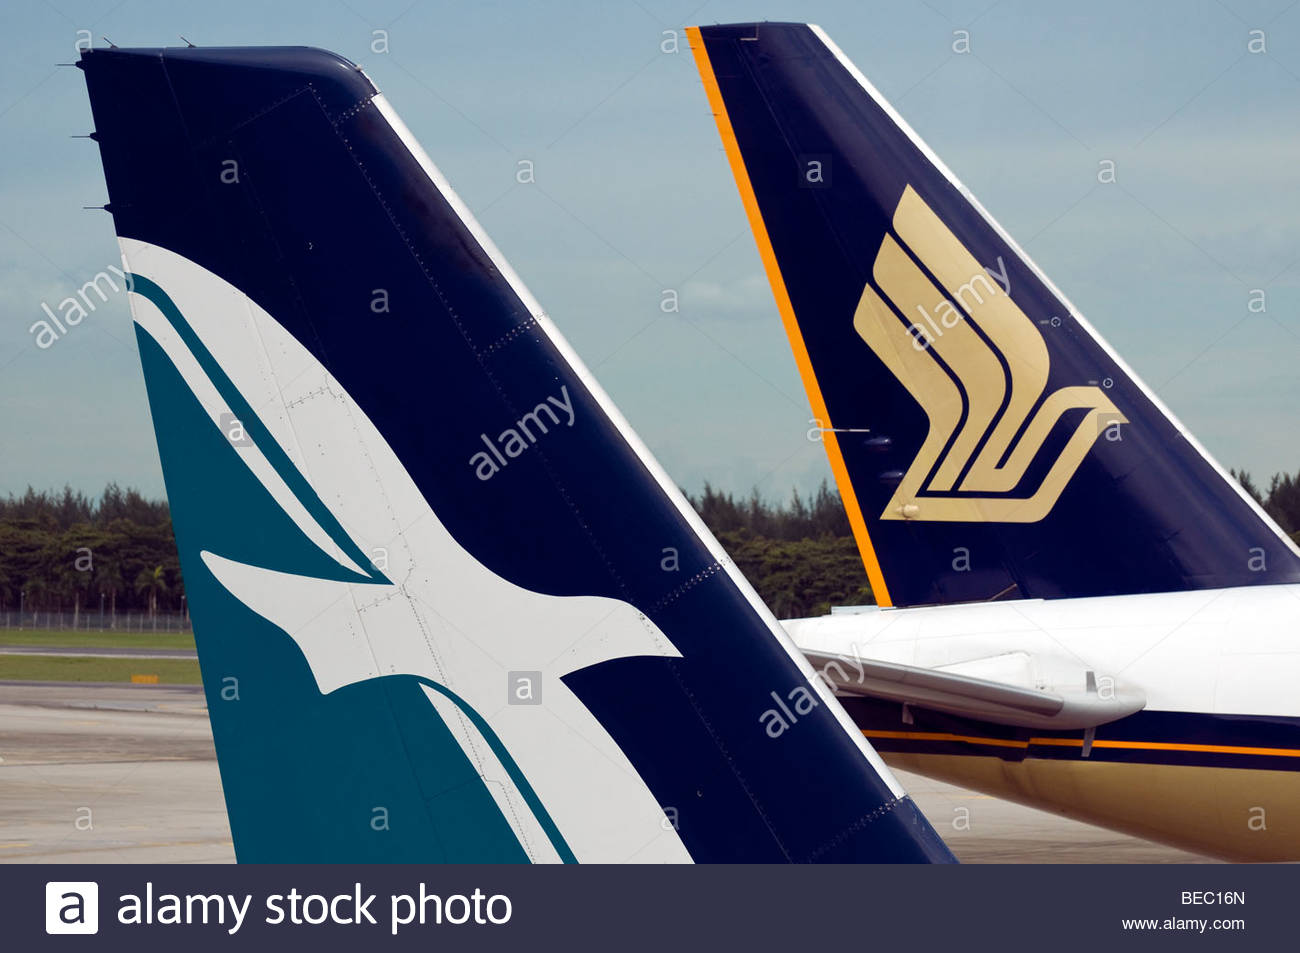 different bird logos on the tails of silk air and